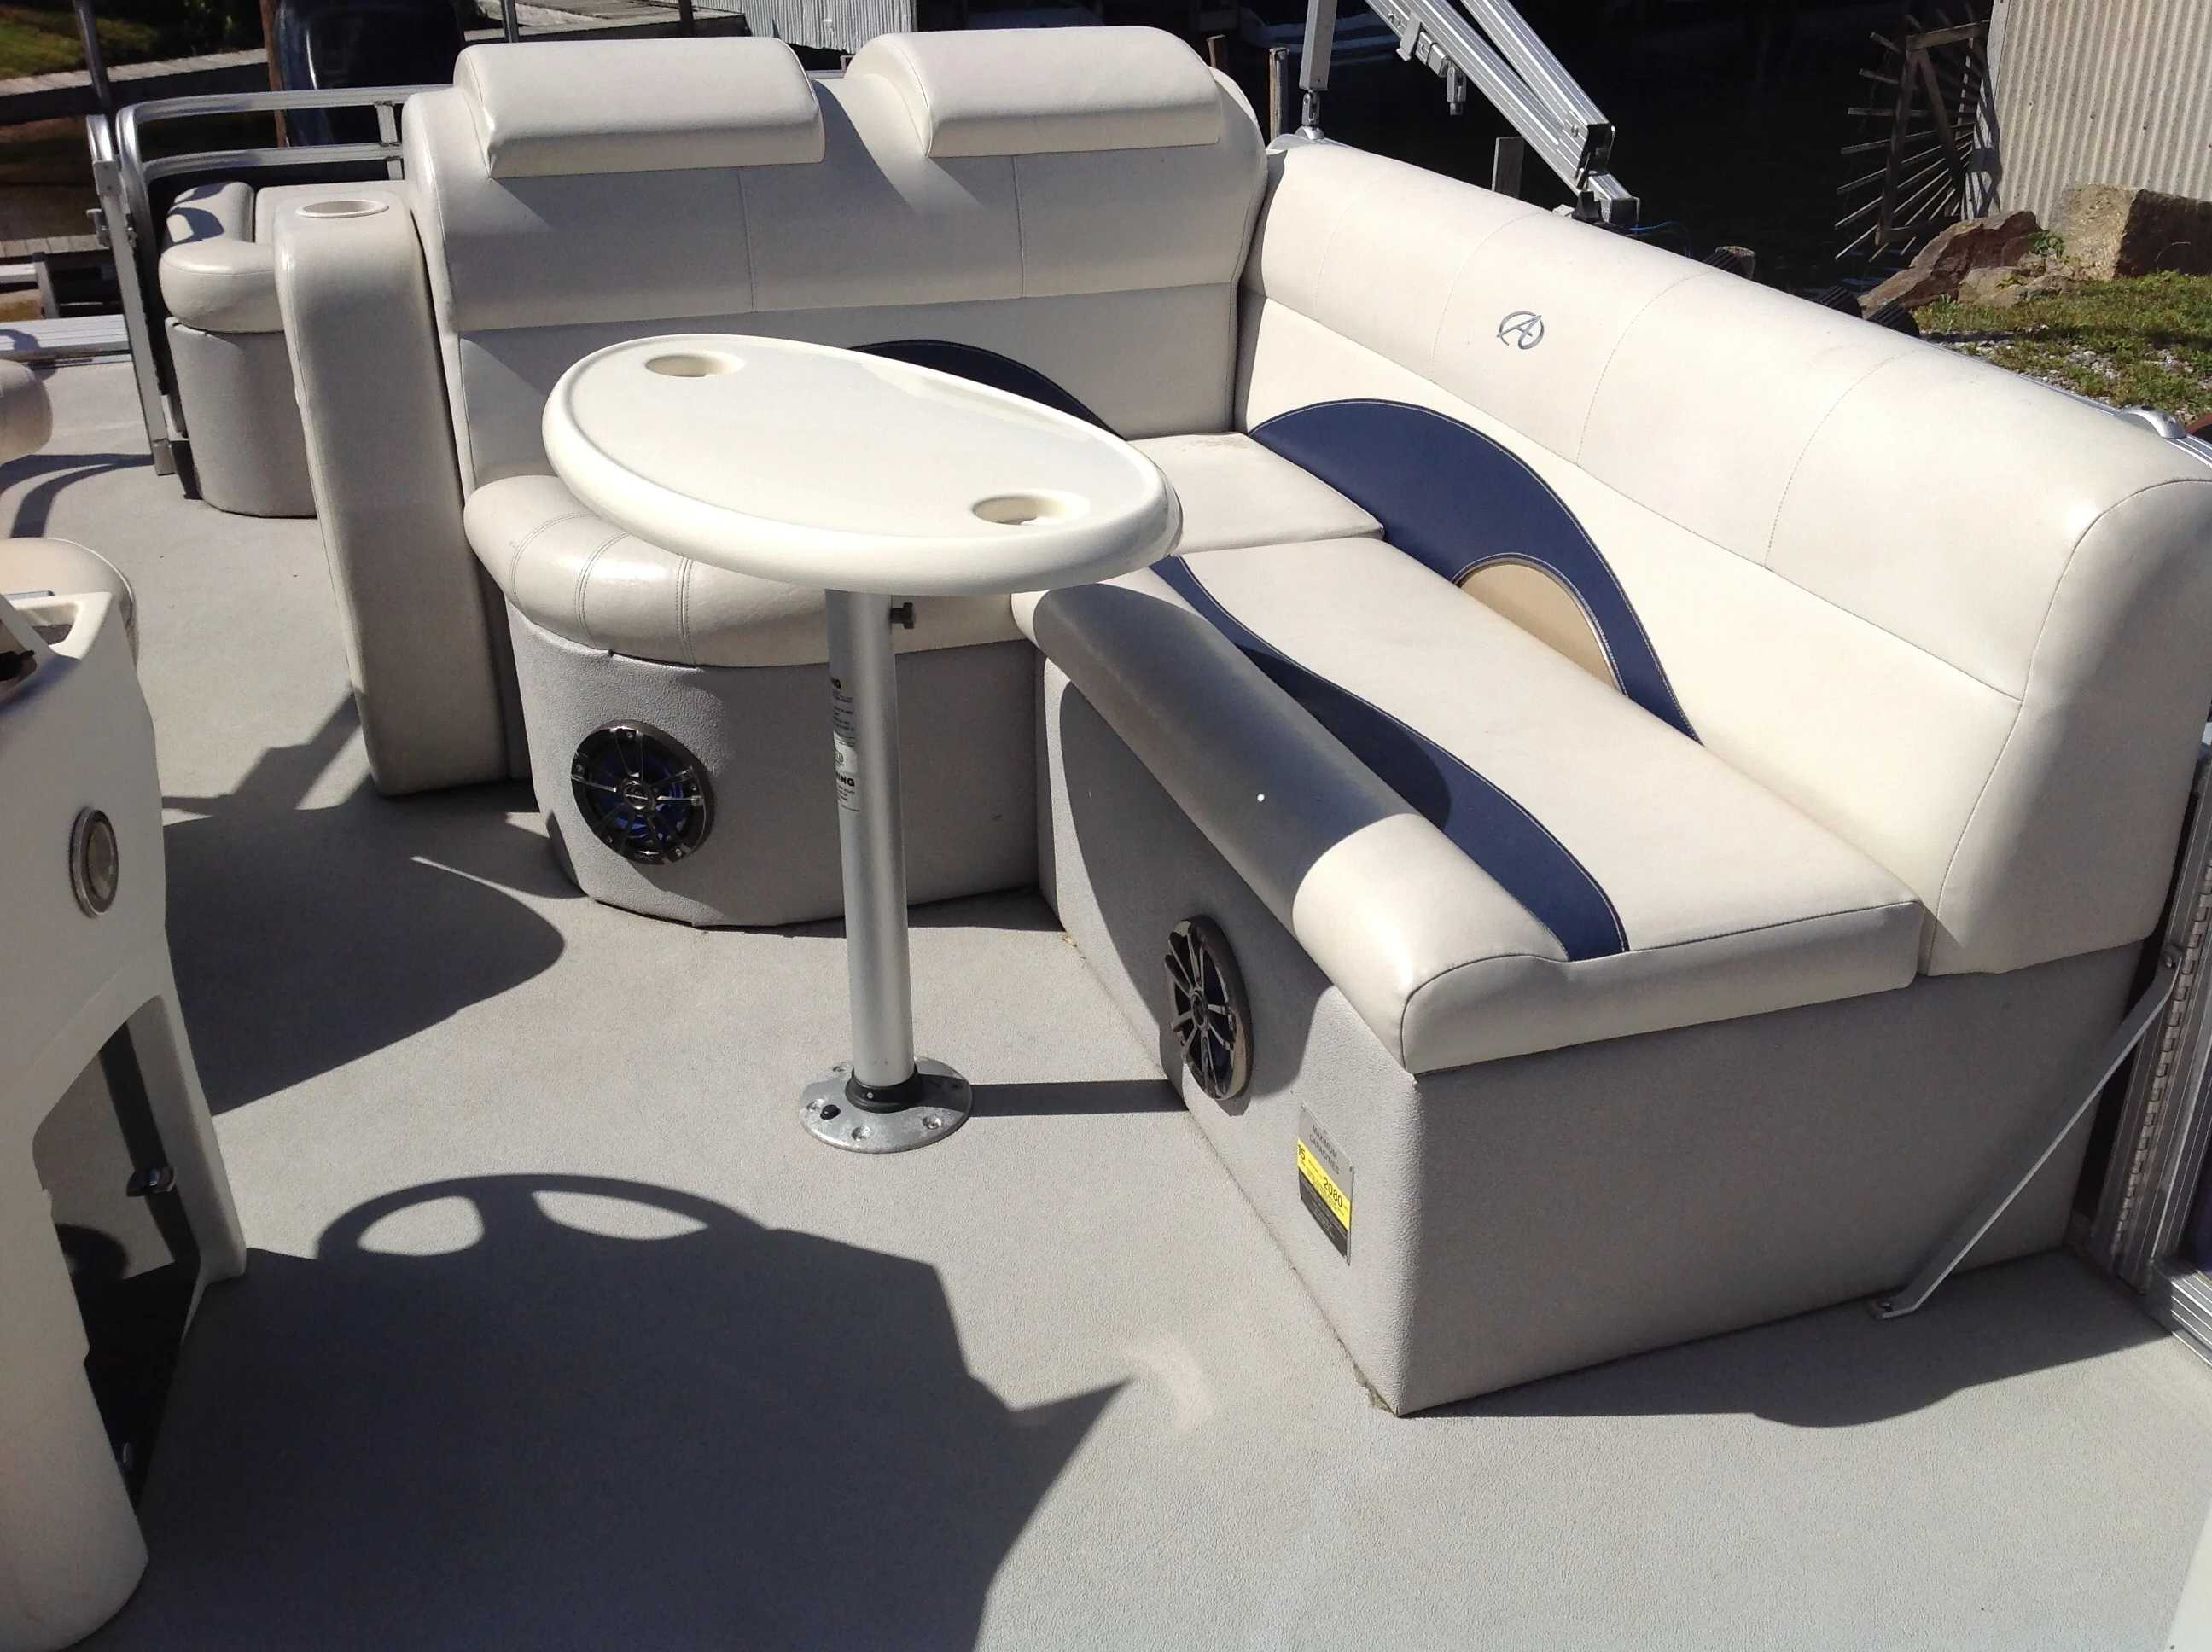 2012 Avalon boat for sale, model of the boat is Catalina Drl 2485 & Image # 9 of 14